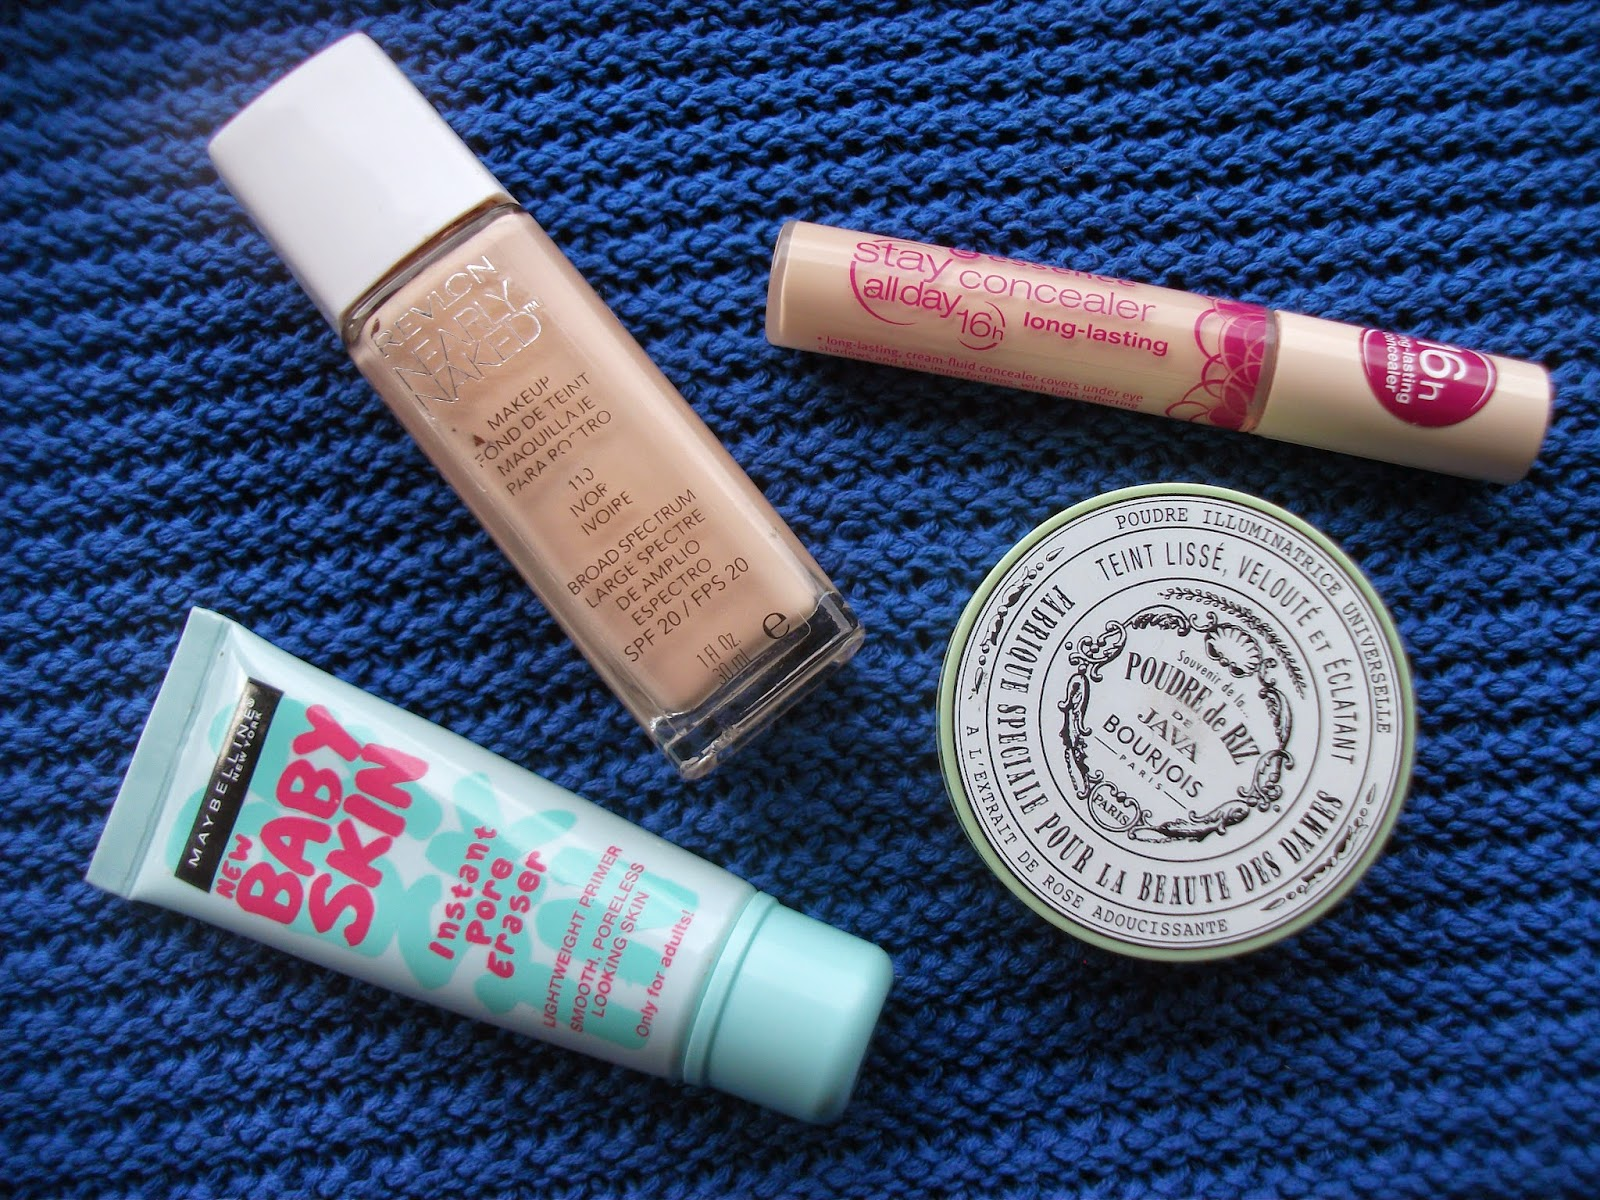 MAYBELLINE BABYSKIN PRIMER, REVLON NEARLY NAKED FOUNDATION, BOURJOIS POWDER, ESSENCE